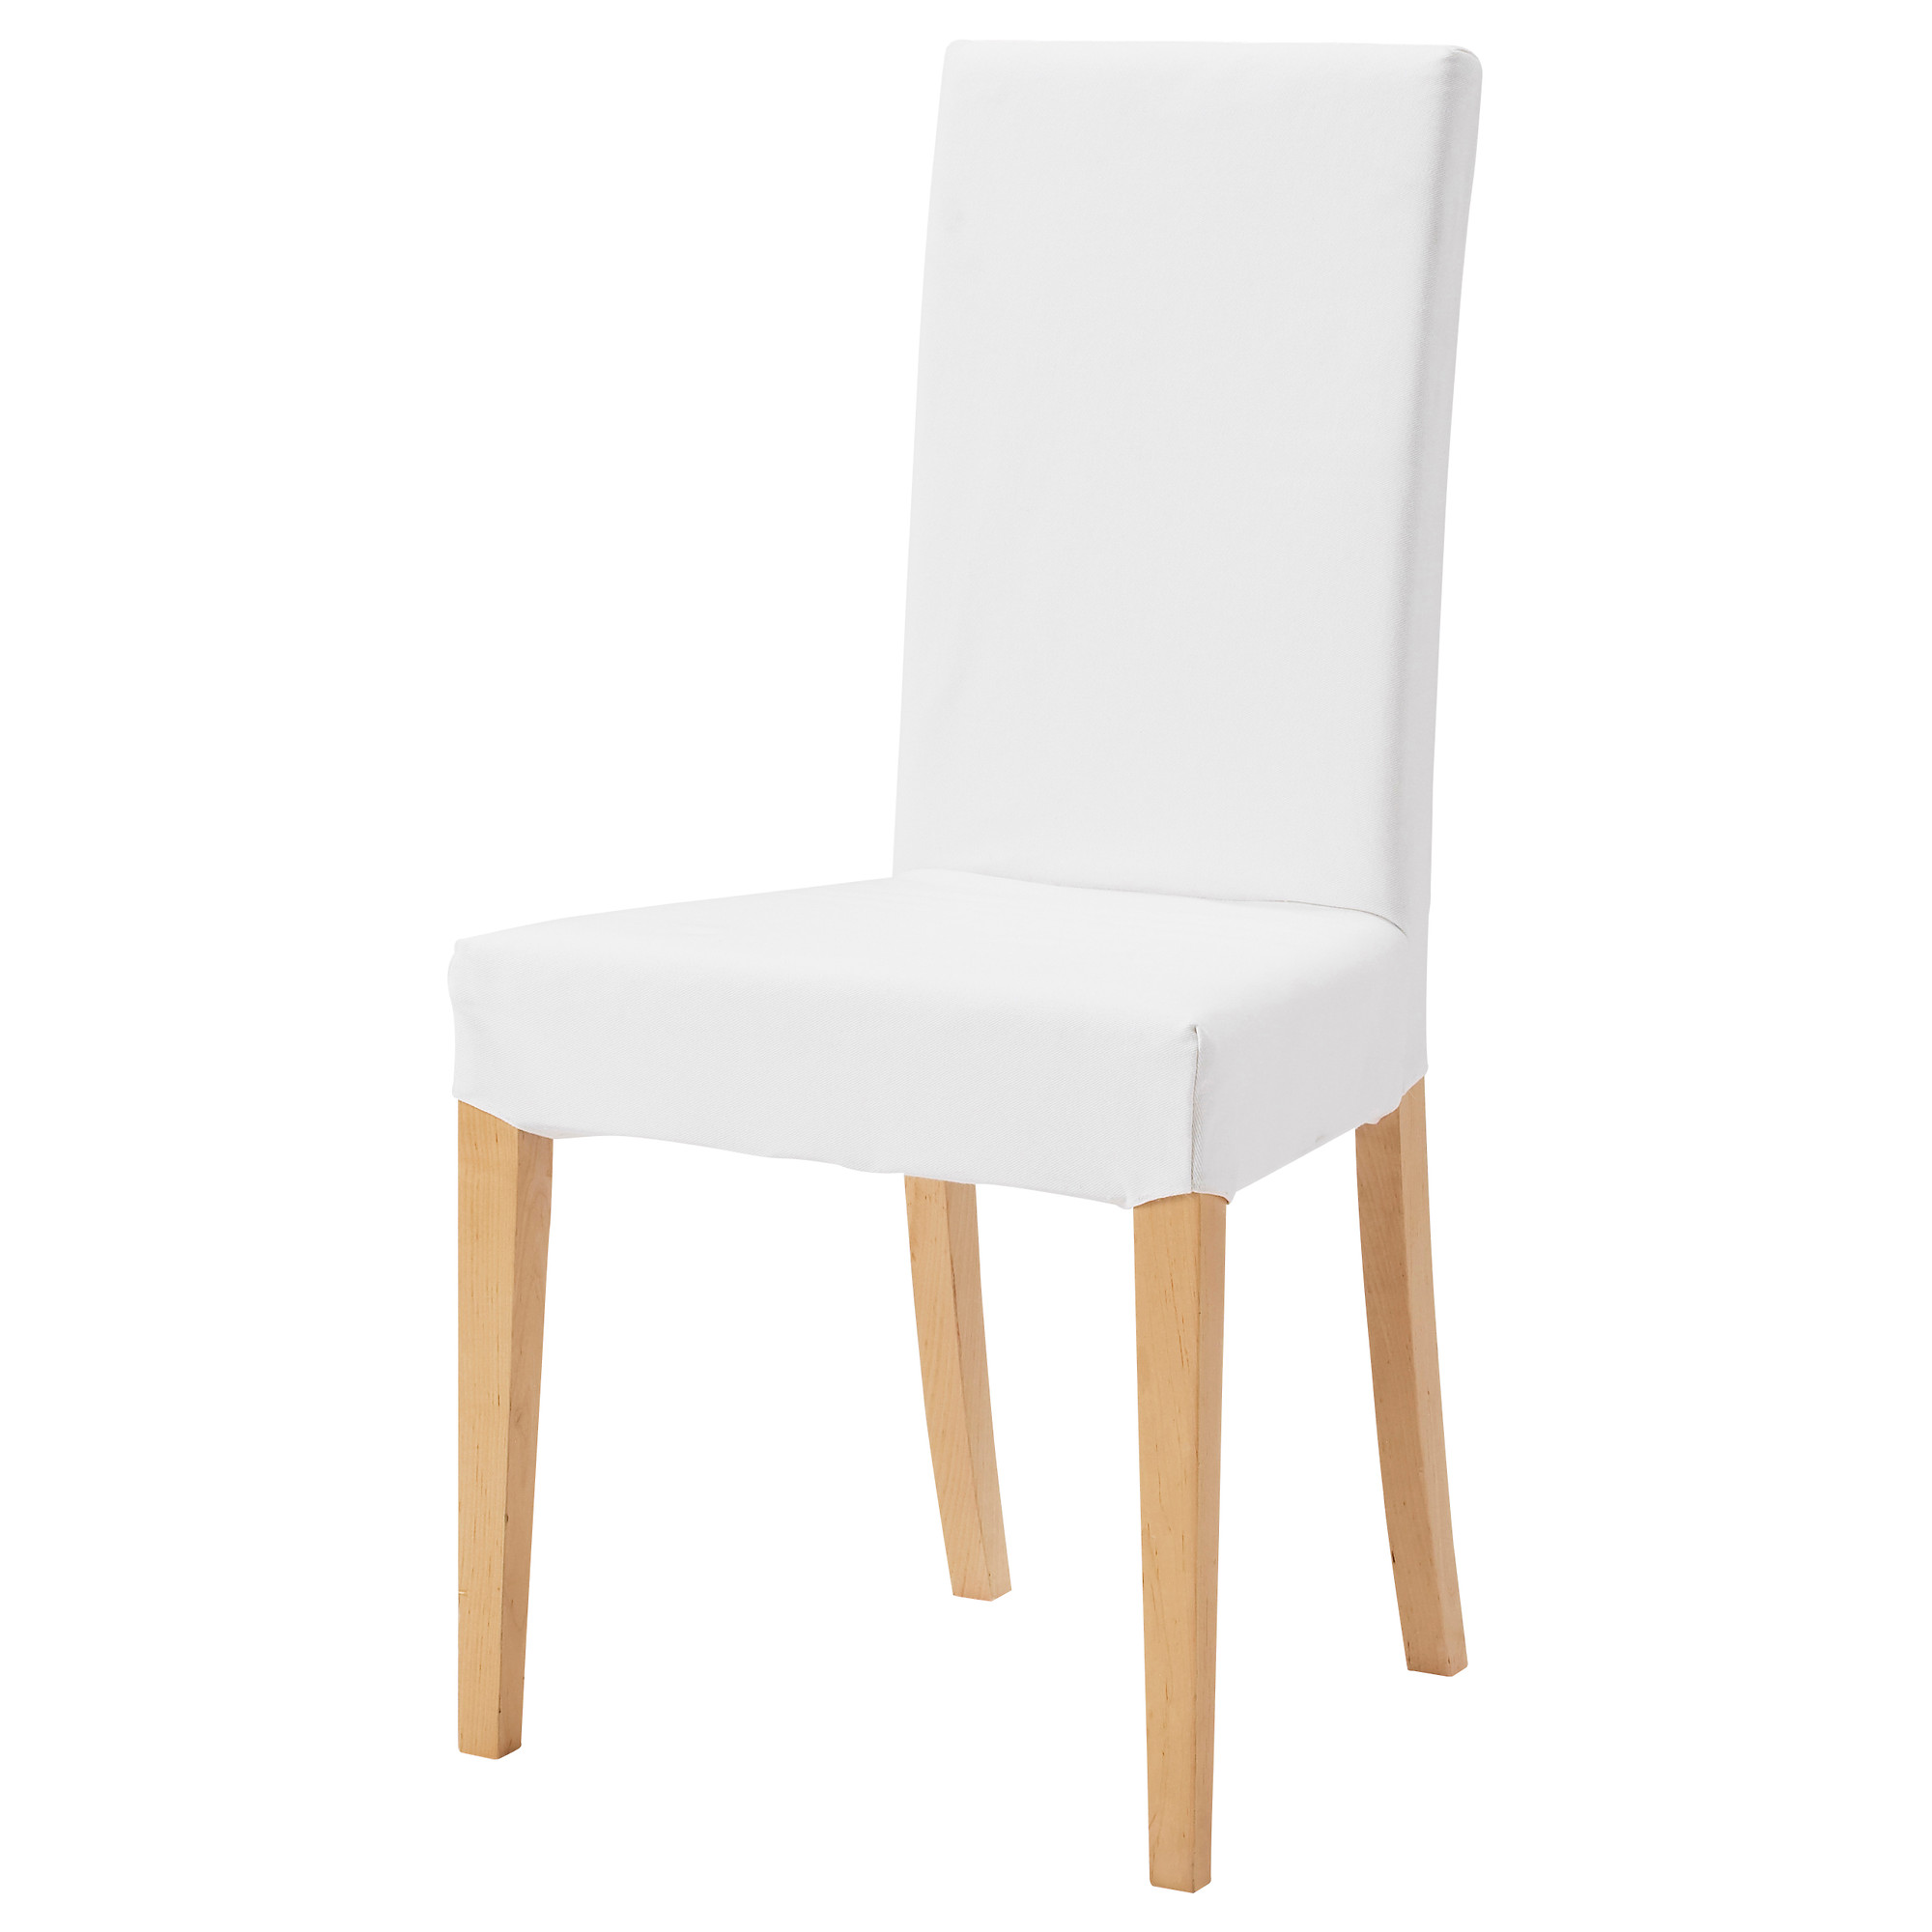 white upholstered chairs used banquet dining chair homesfeed with wooden legs